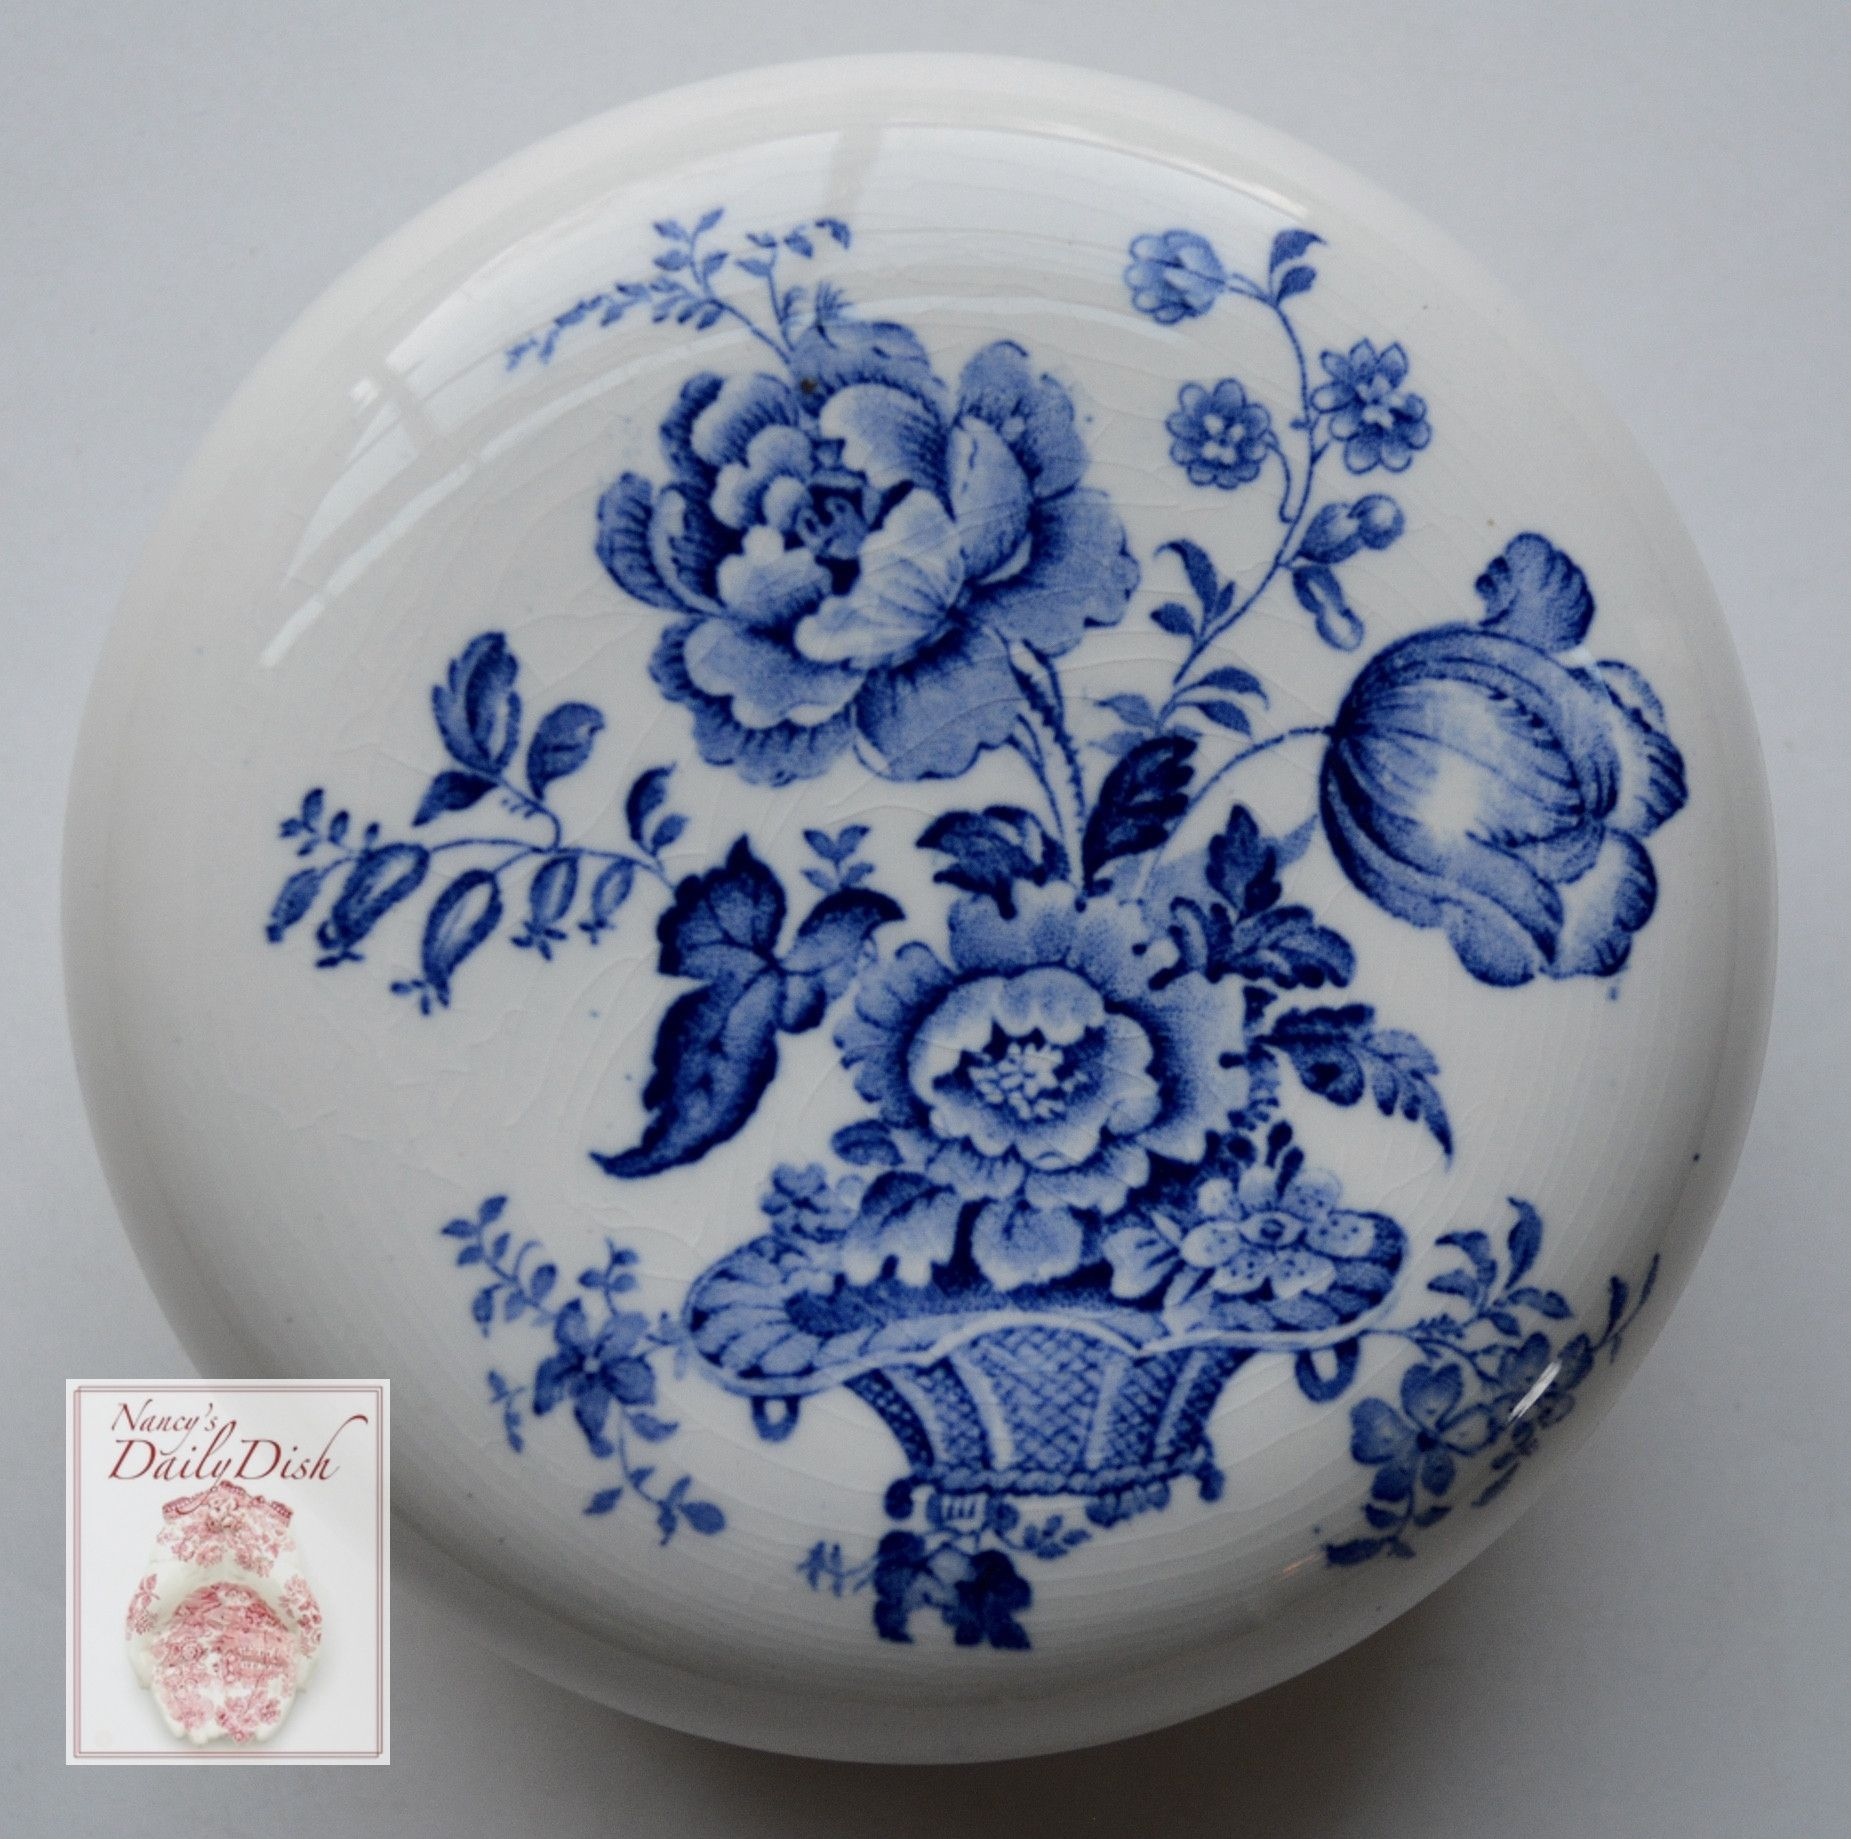 Charlotte Floral Blue Transferware Vintage English Transferware BATH ...